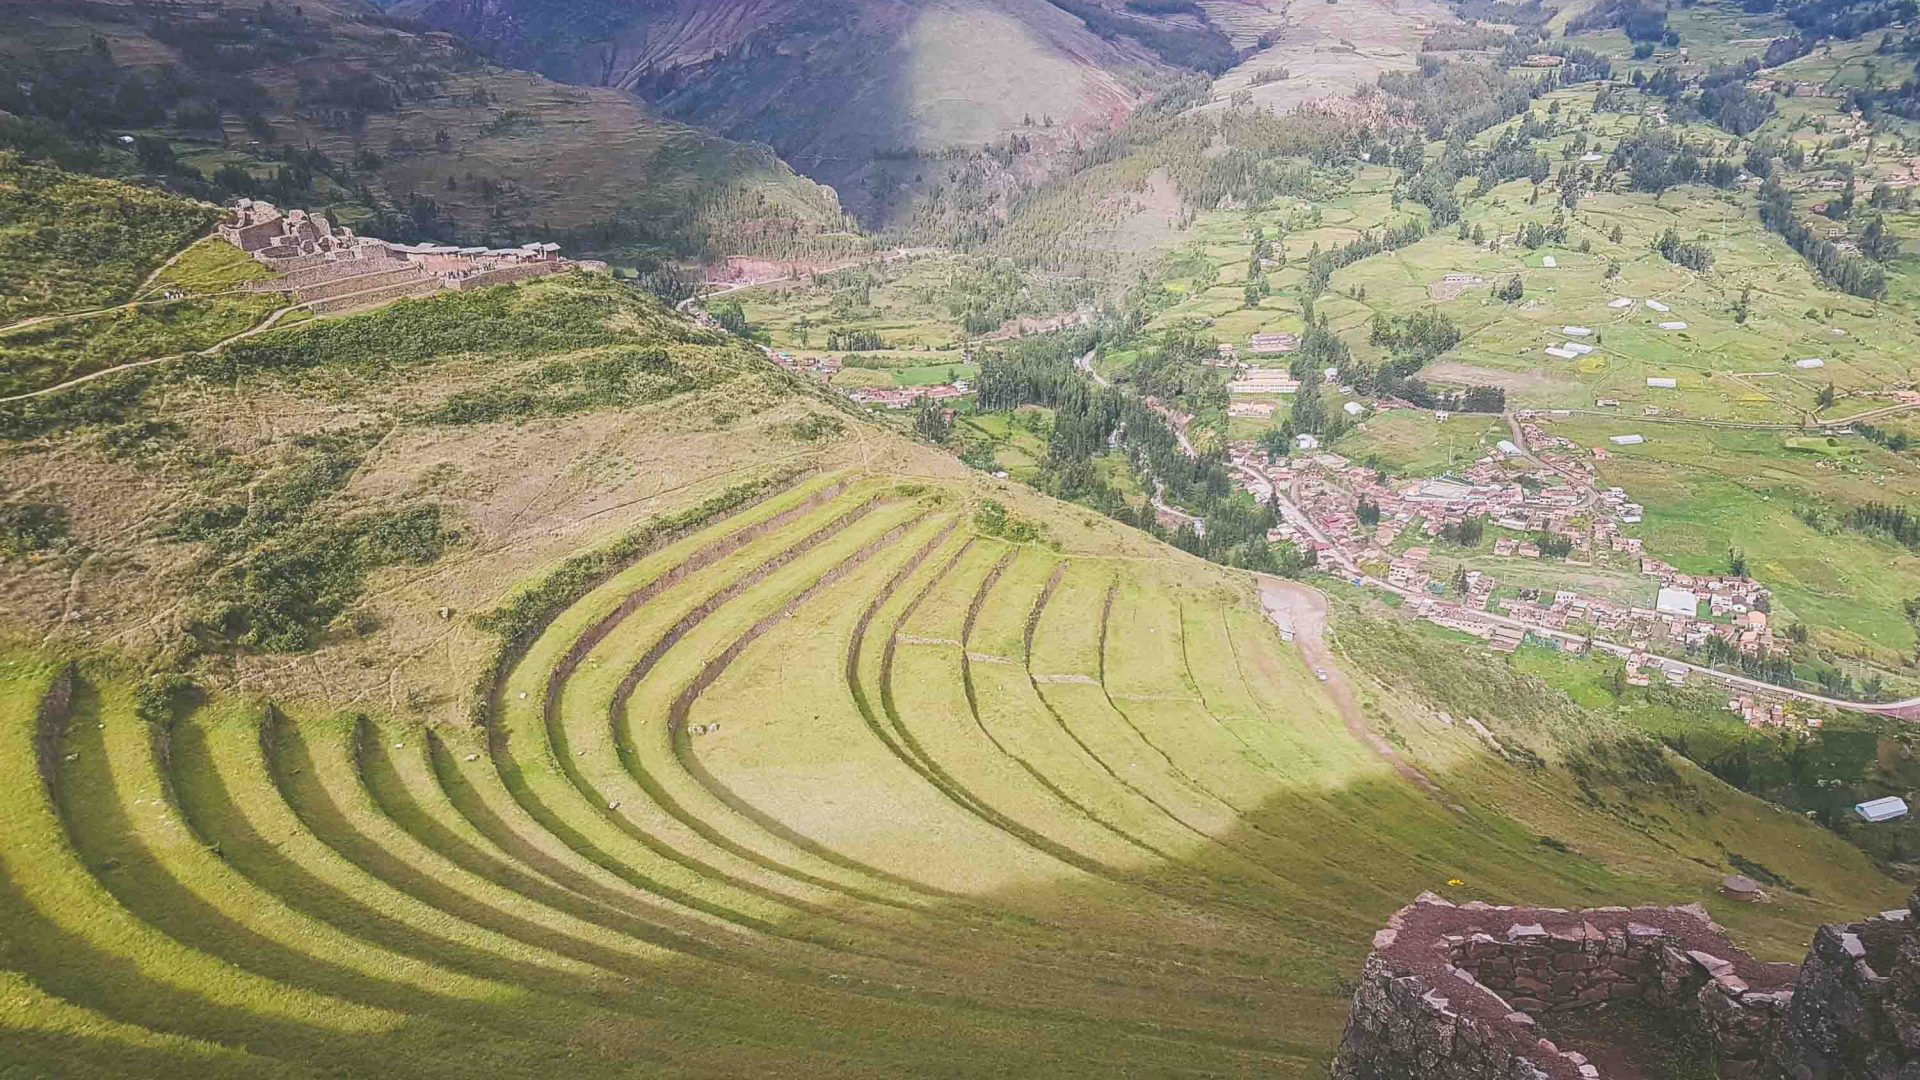 Terraced fields meet hikers during the Salkantay hike in Peru.